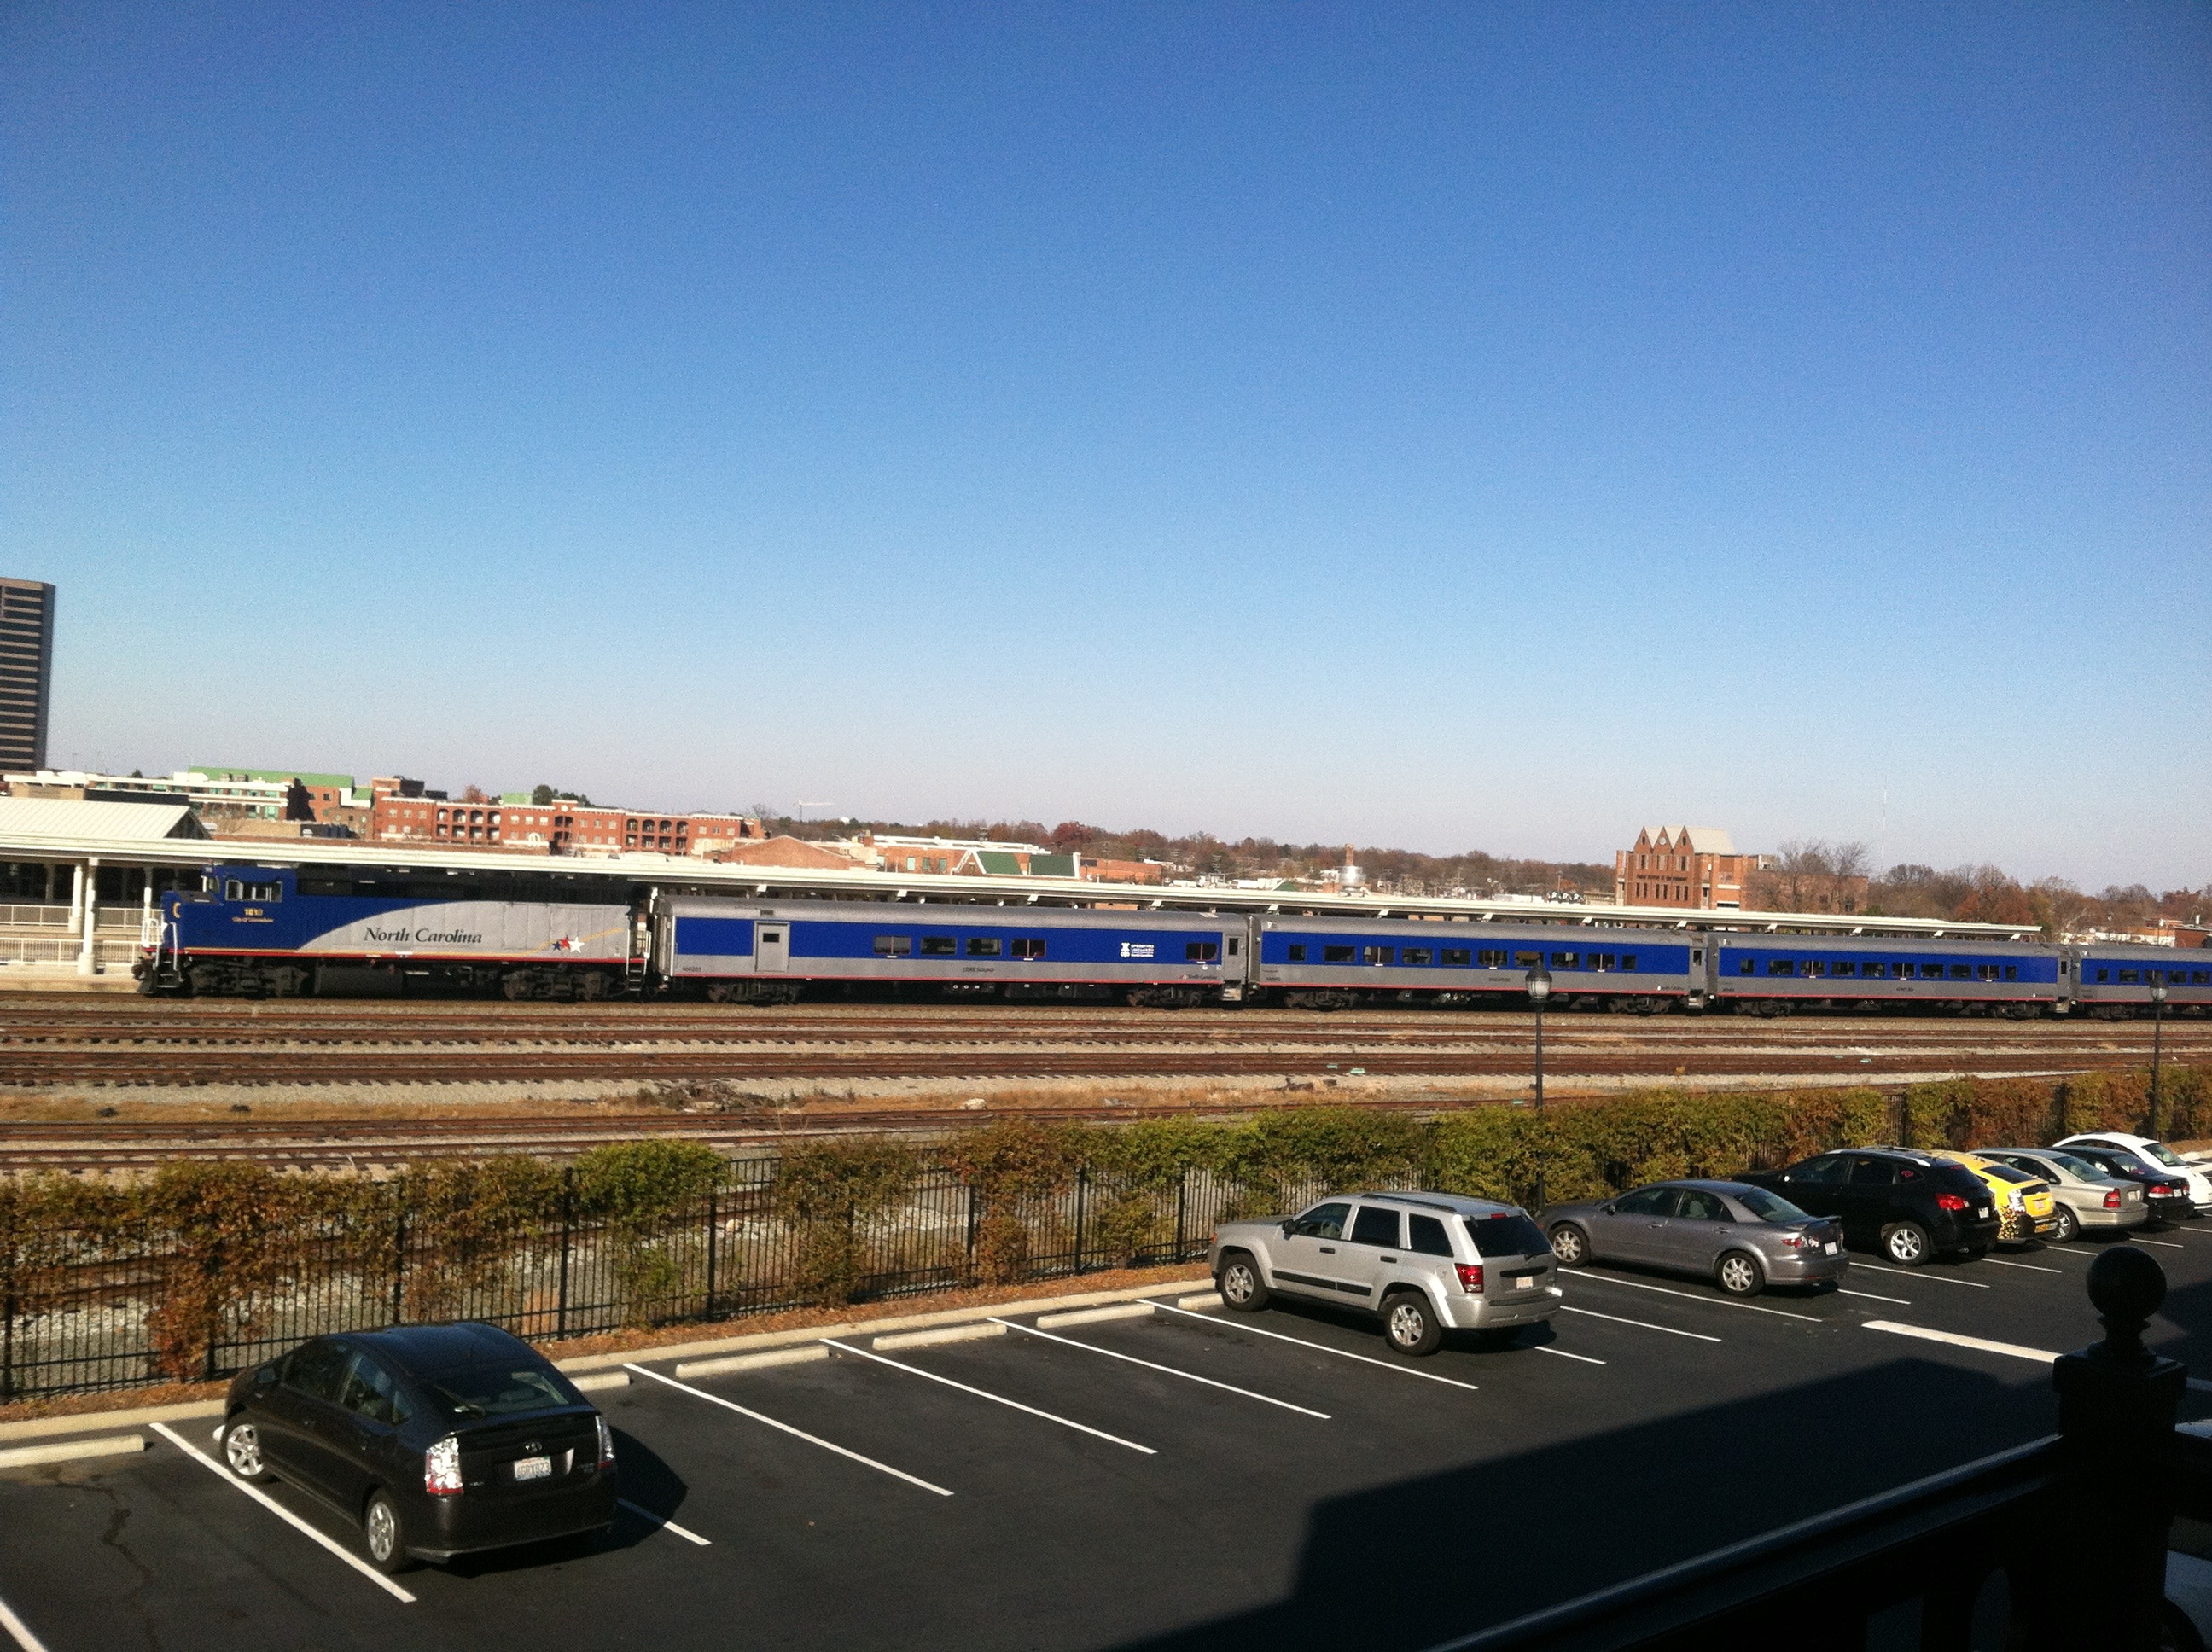 Mid-Day Piedmont train in route to Charlotte from Raleigh, as seen from the balcony of CityView Apartments in Greensboro. Photo by Kristen Jeffers, the author.